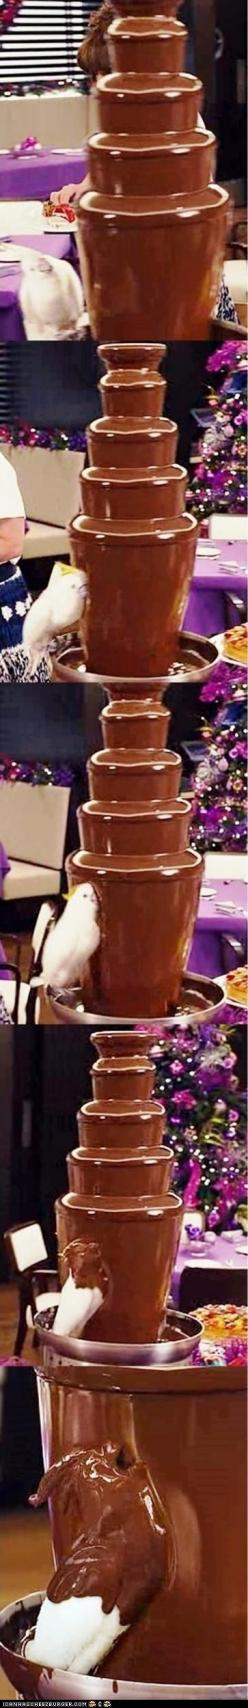 This bird does what we've all thought about doing at one point or another. Hilarious.: Chocolate Fountains, Chocolates, Chocolate Covered, Funny, Birds, Animal